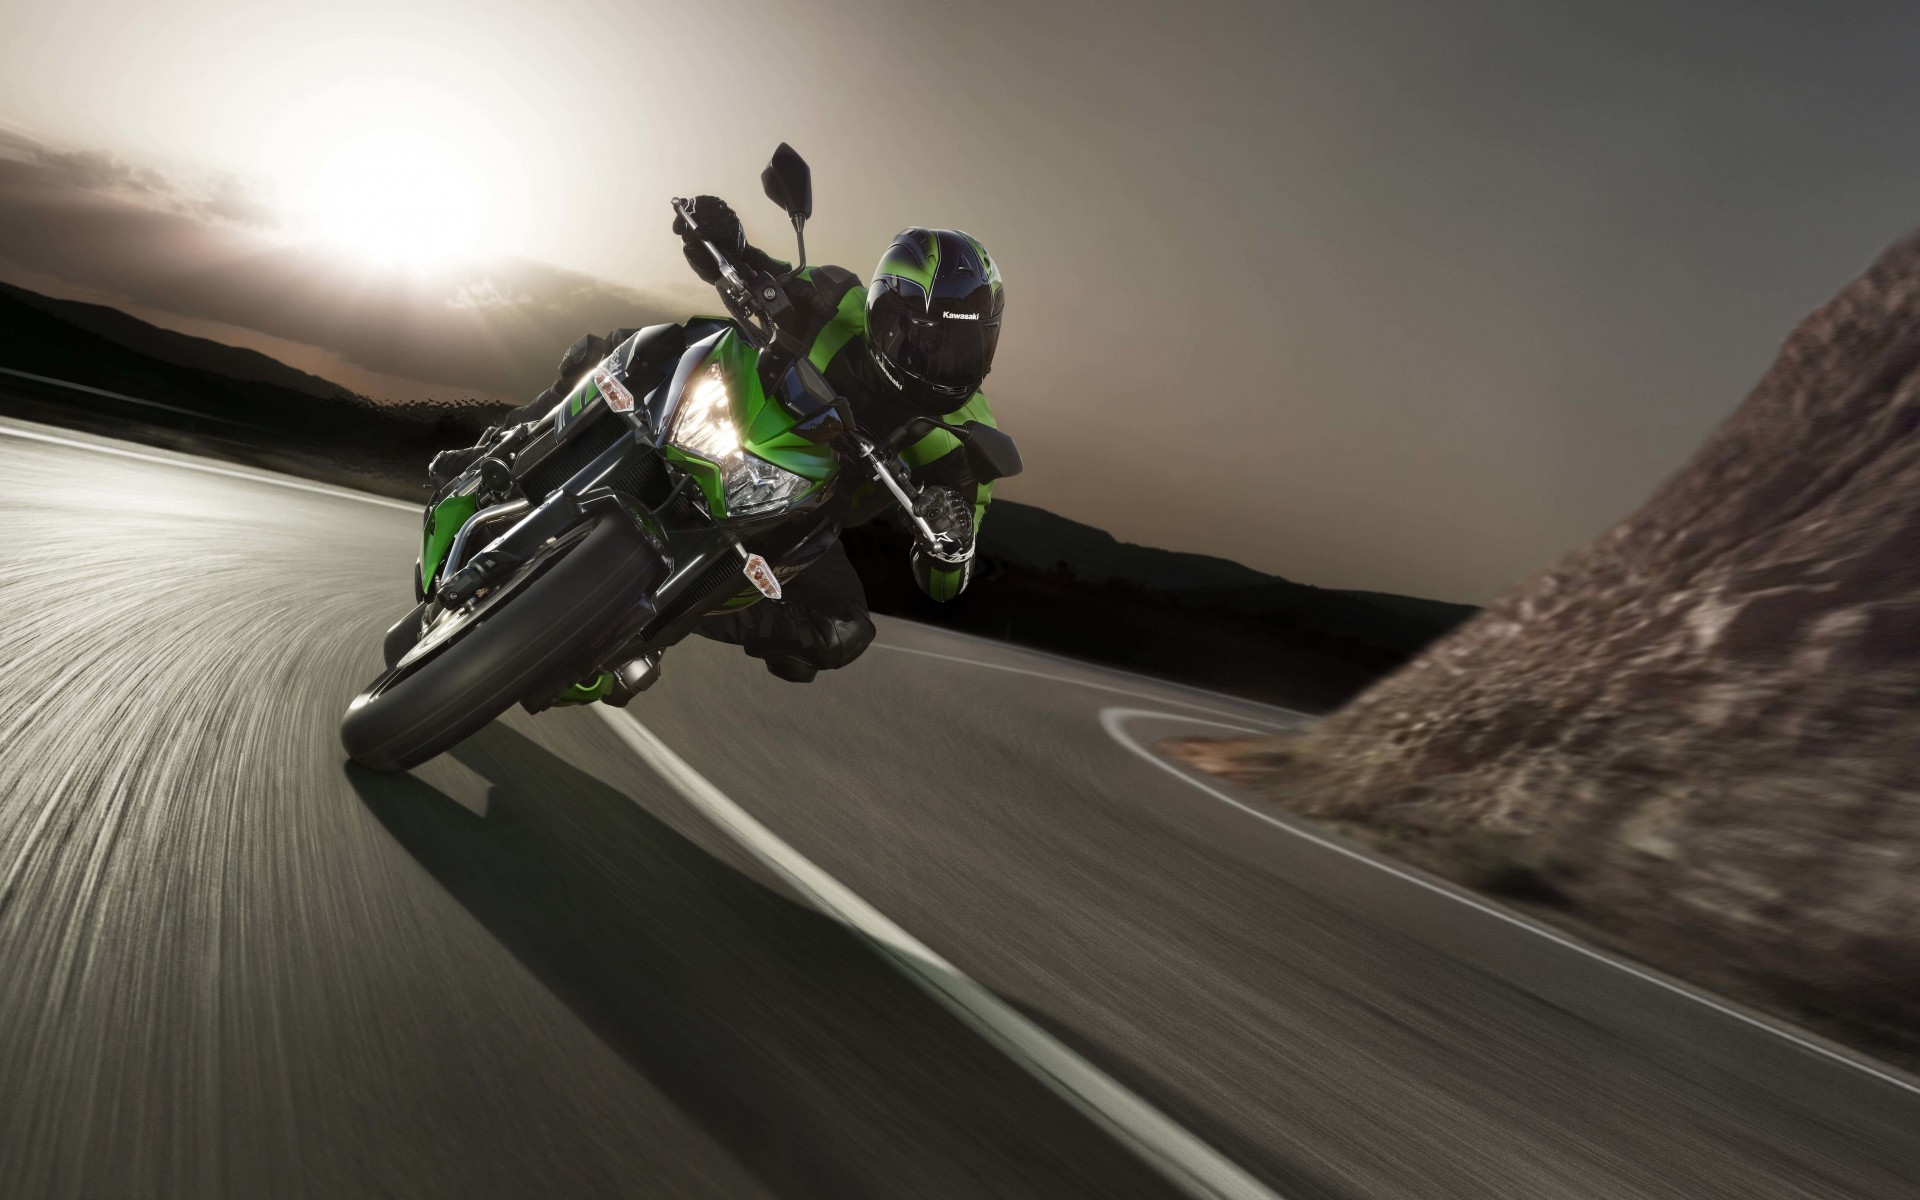 Kawasaki Ninja ZX-10R Wallpaper for Desktop 1920x1200